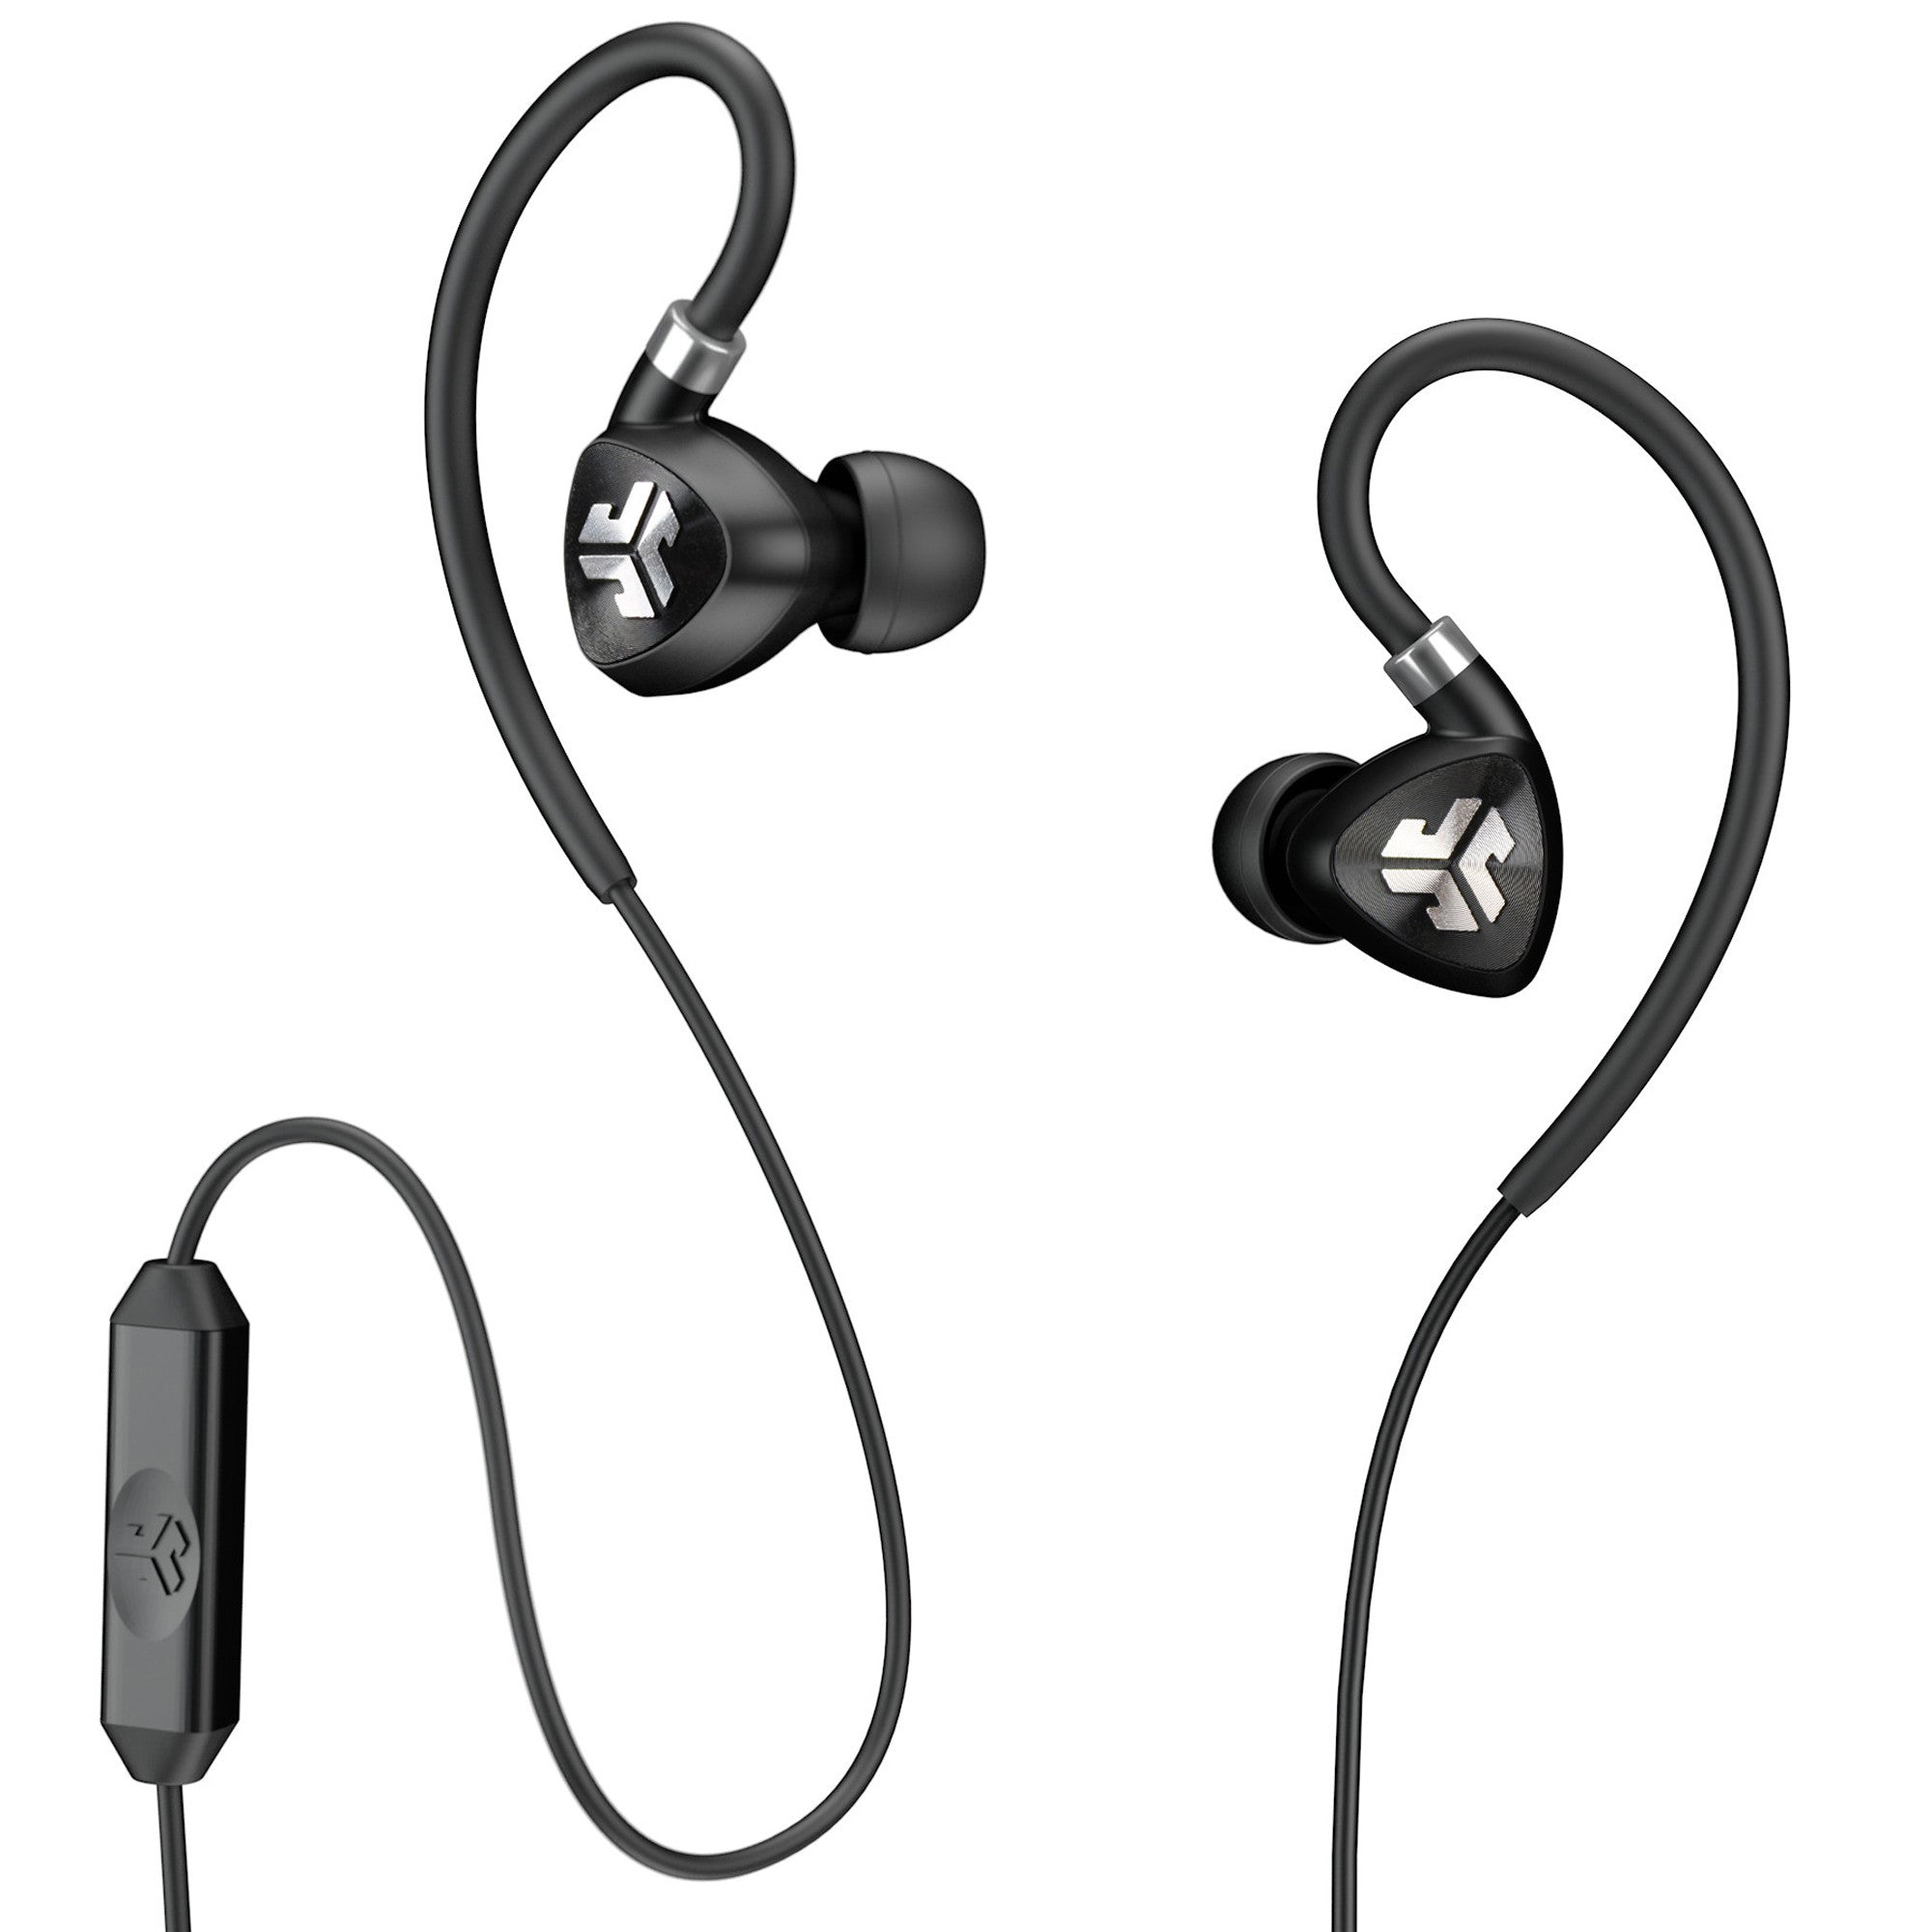 78185a0d2c7 Close-up of Black Fit 2.0 Sport Earbuds and Microphone